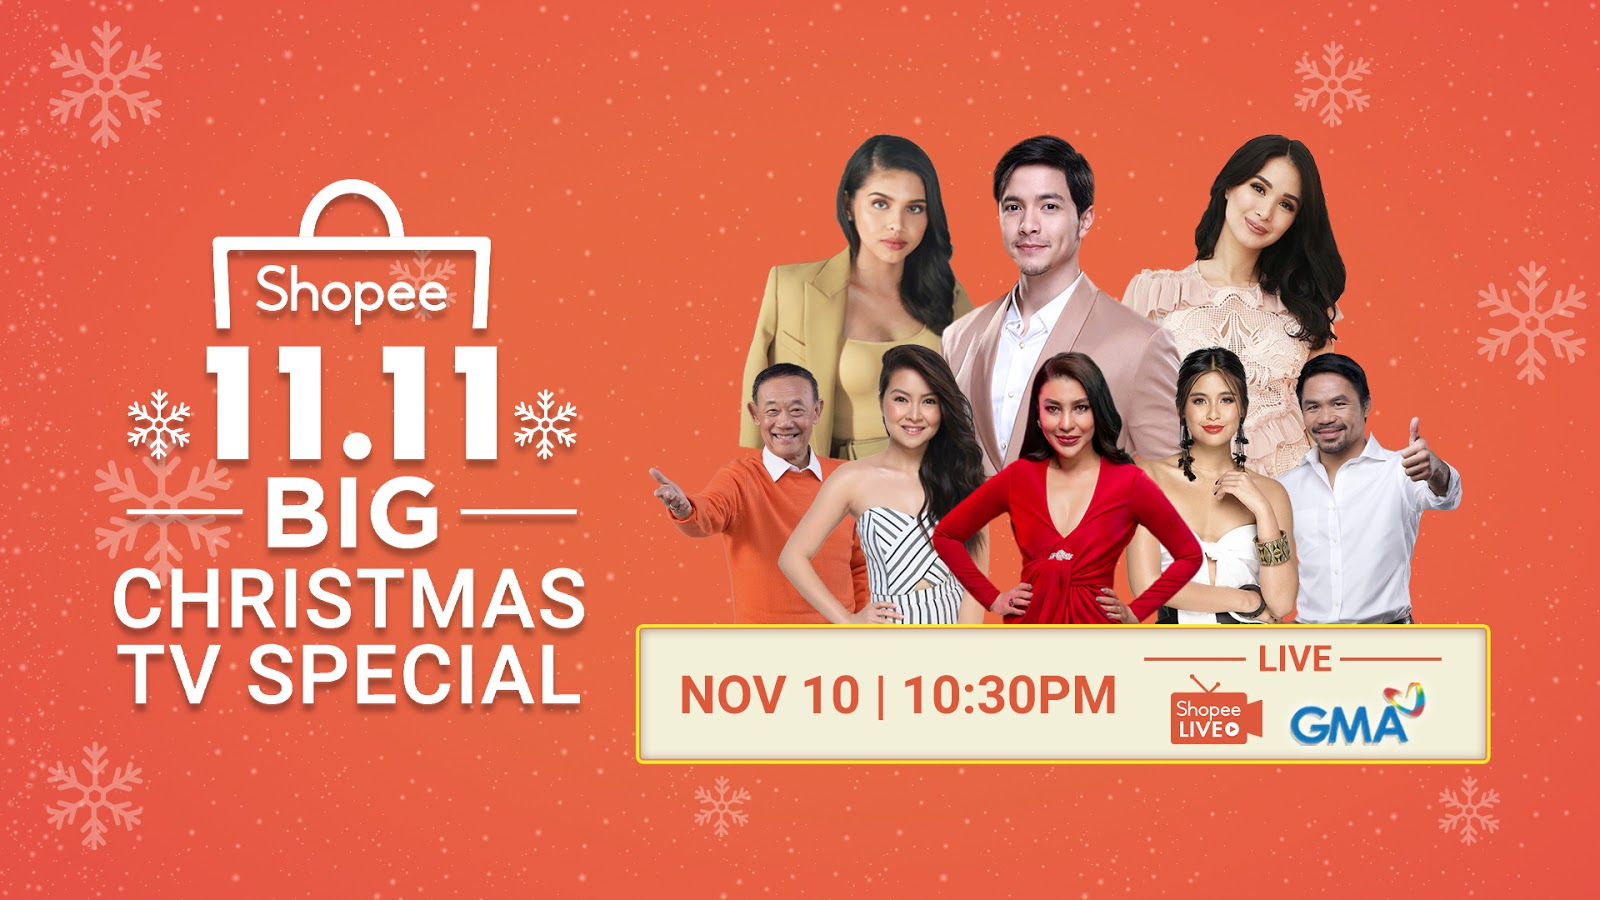 Shopee holds its first-ever 11.11 Big Christmas TV Special on GMA-7